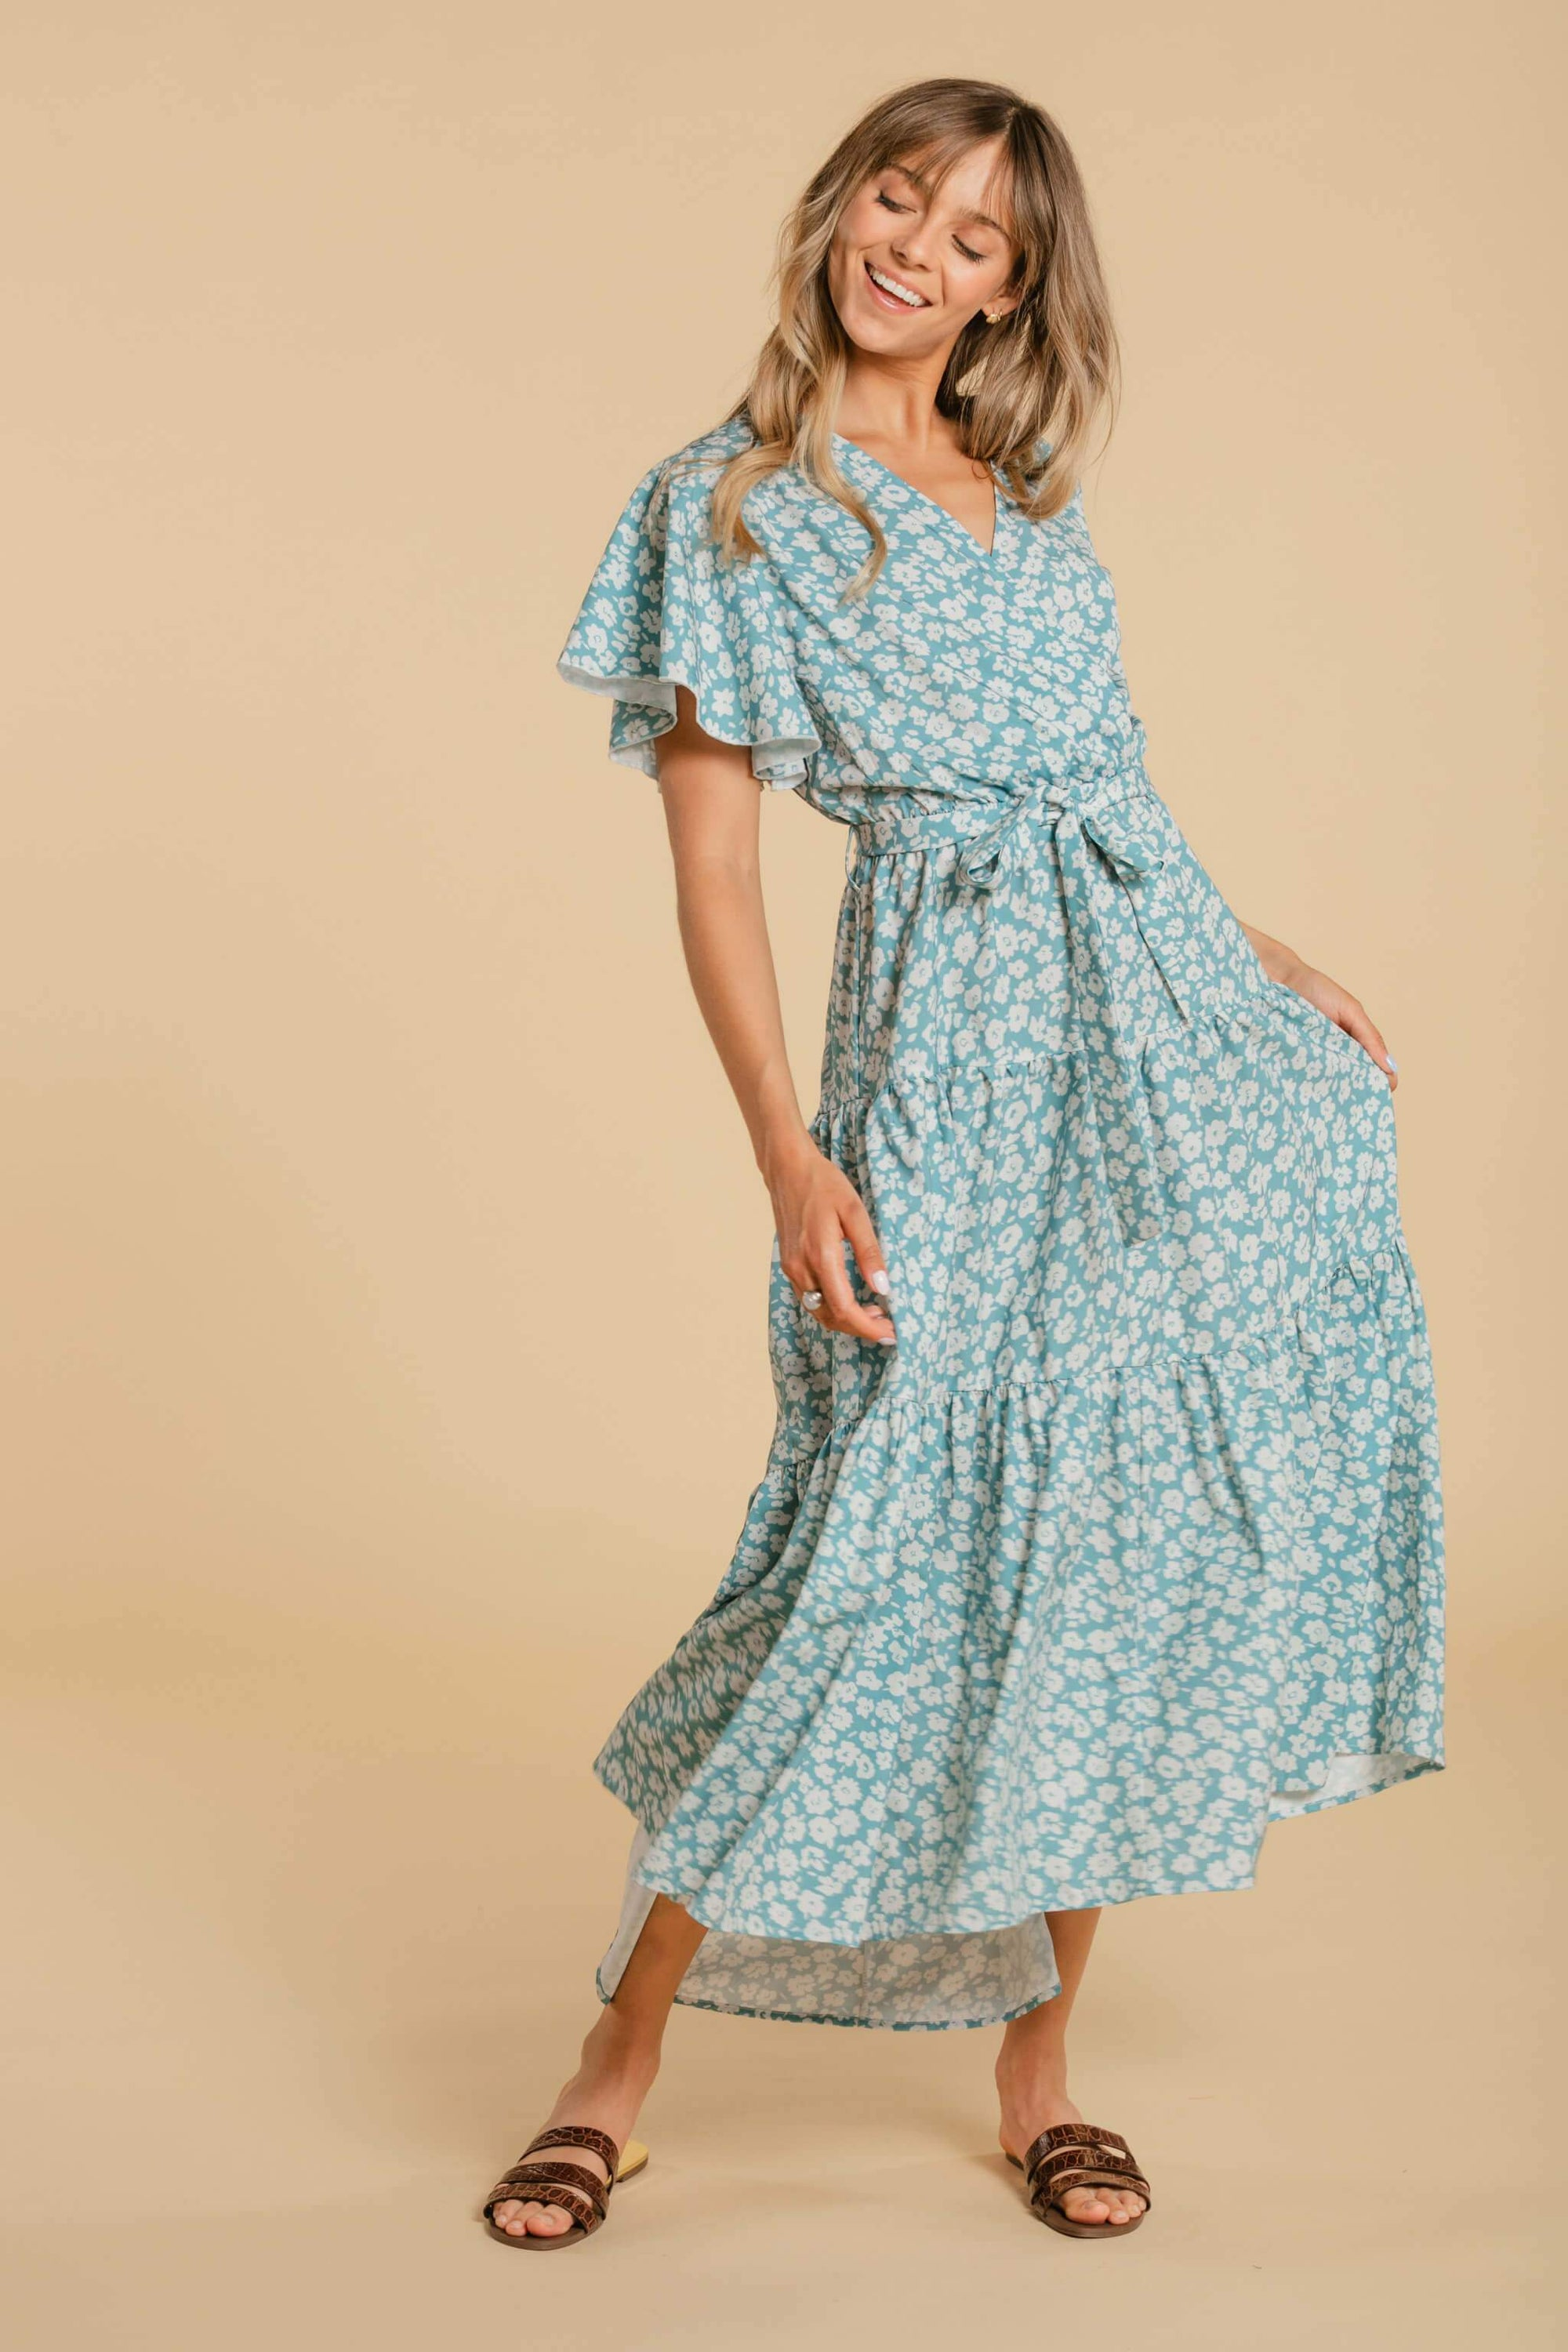 Robe longue fleurie avec ganse Robe WOMANCE - Distribution S Turquoise